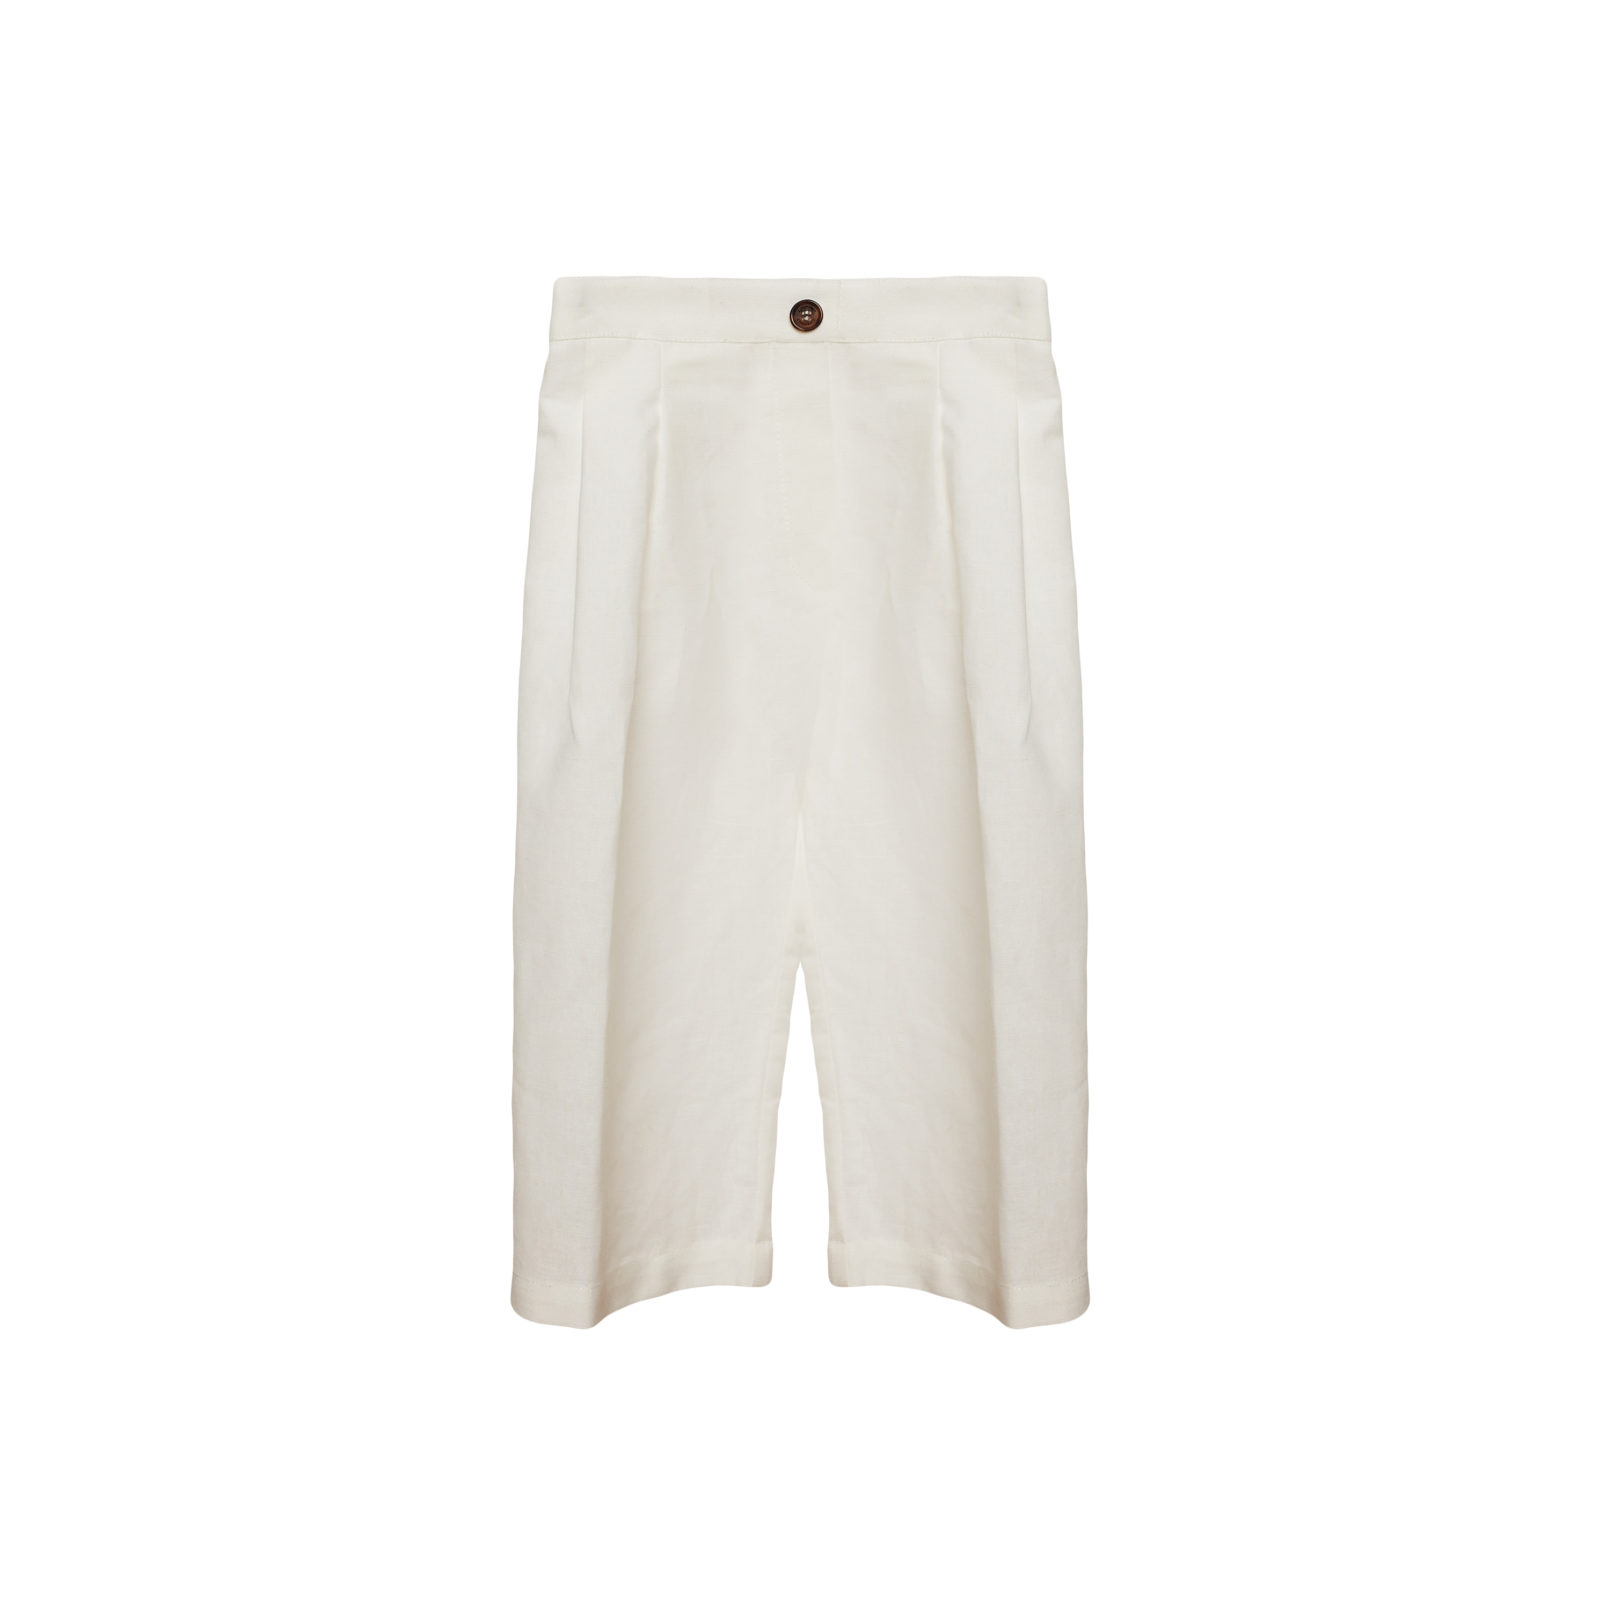 Linda Raff Collection -PANTS CORN KIDS WHITE LINEN